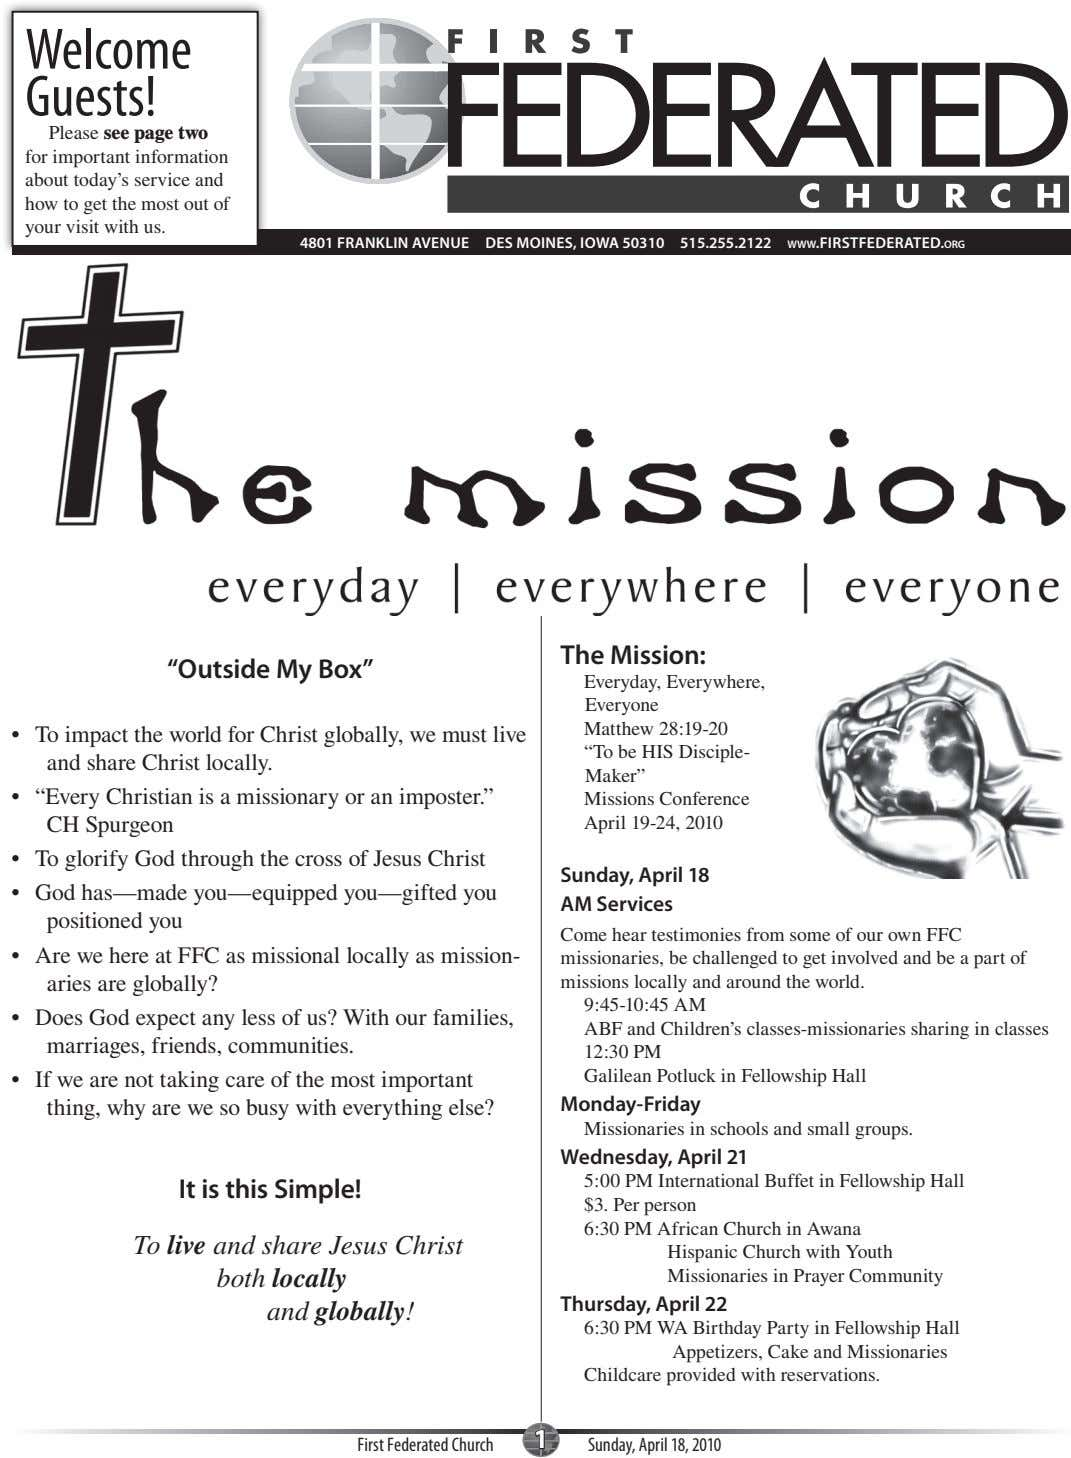 Welcome Guests! Please see page two for important information about today's service and how to